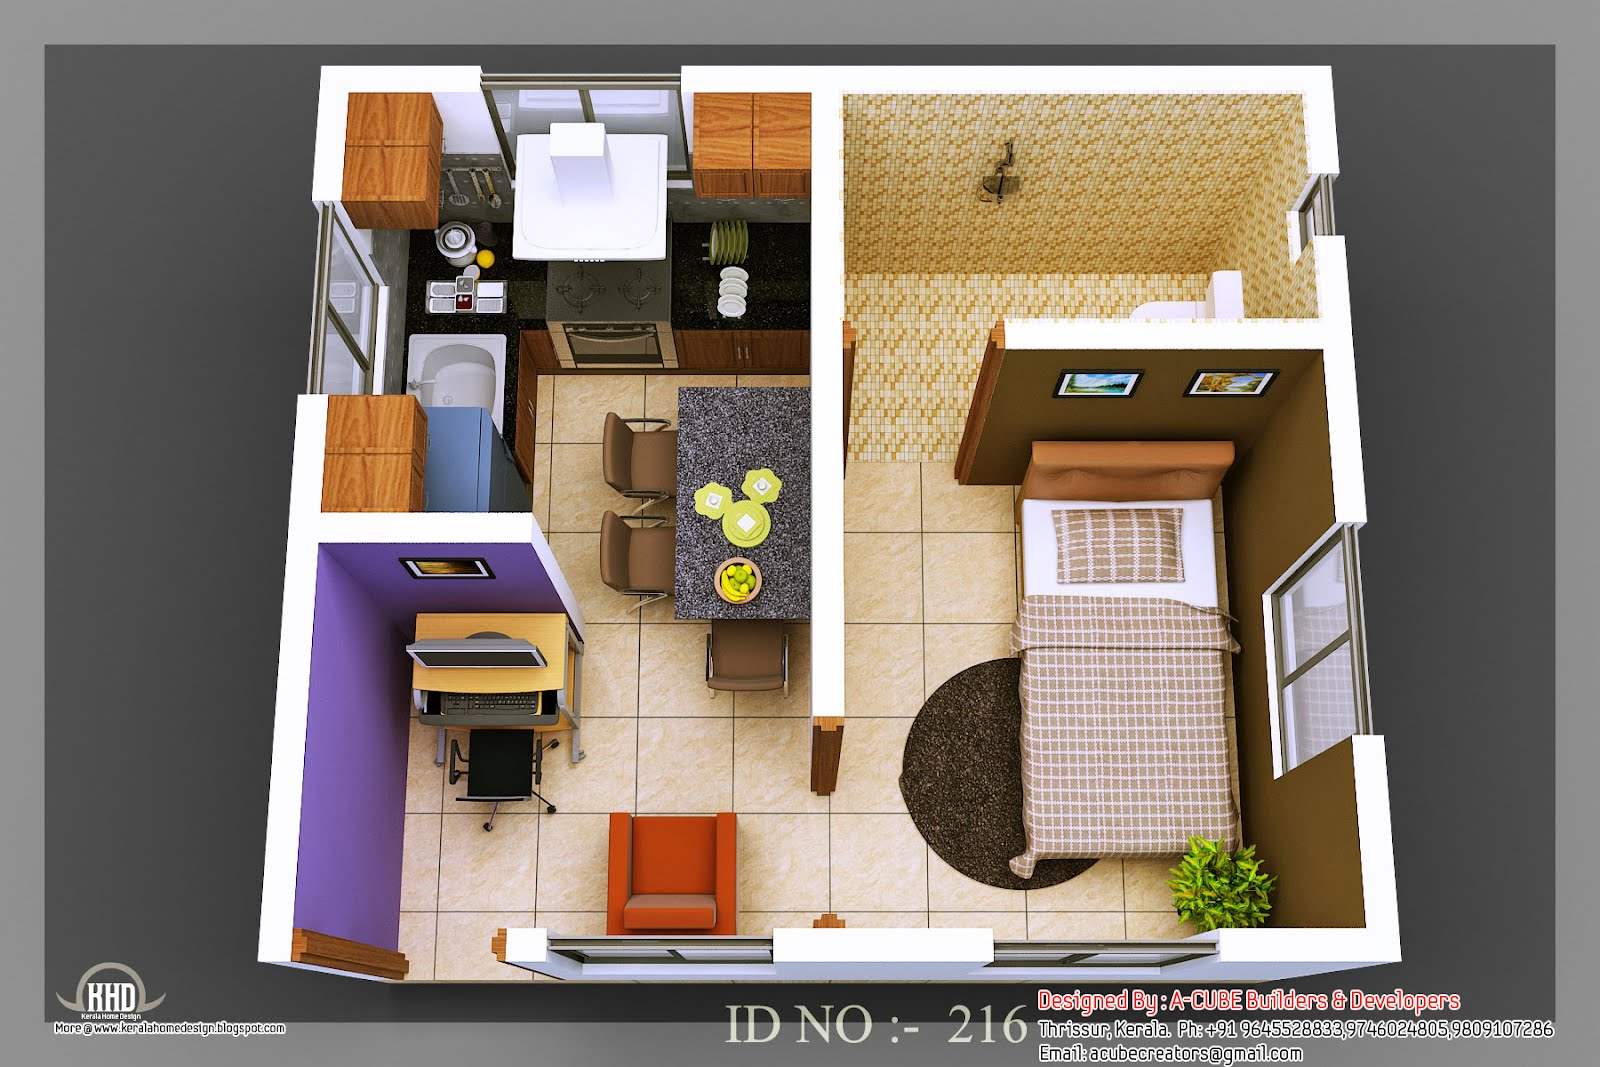 3d isometric views of small house plans a taste in heaven for Home design 3d view